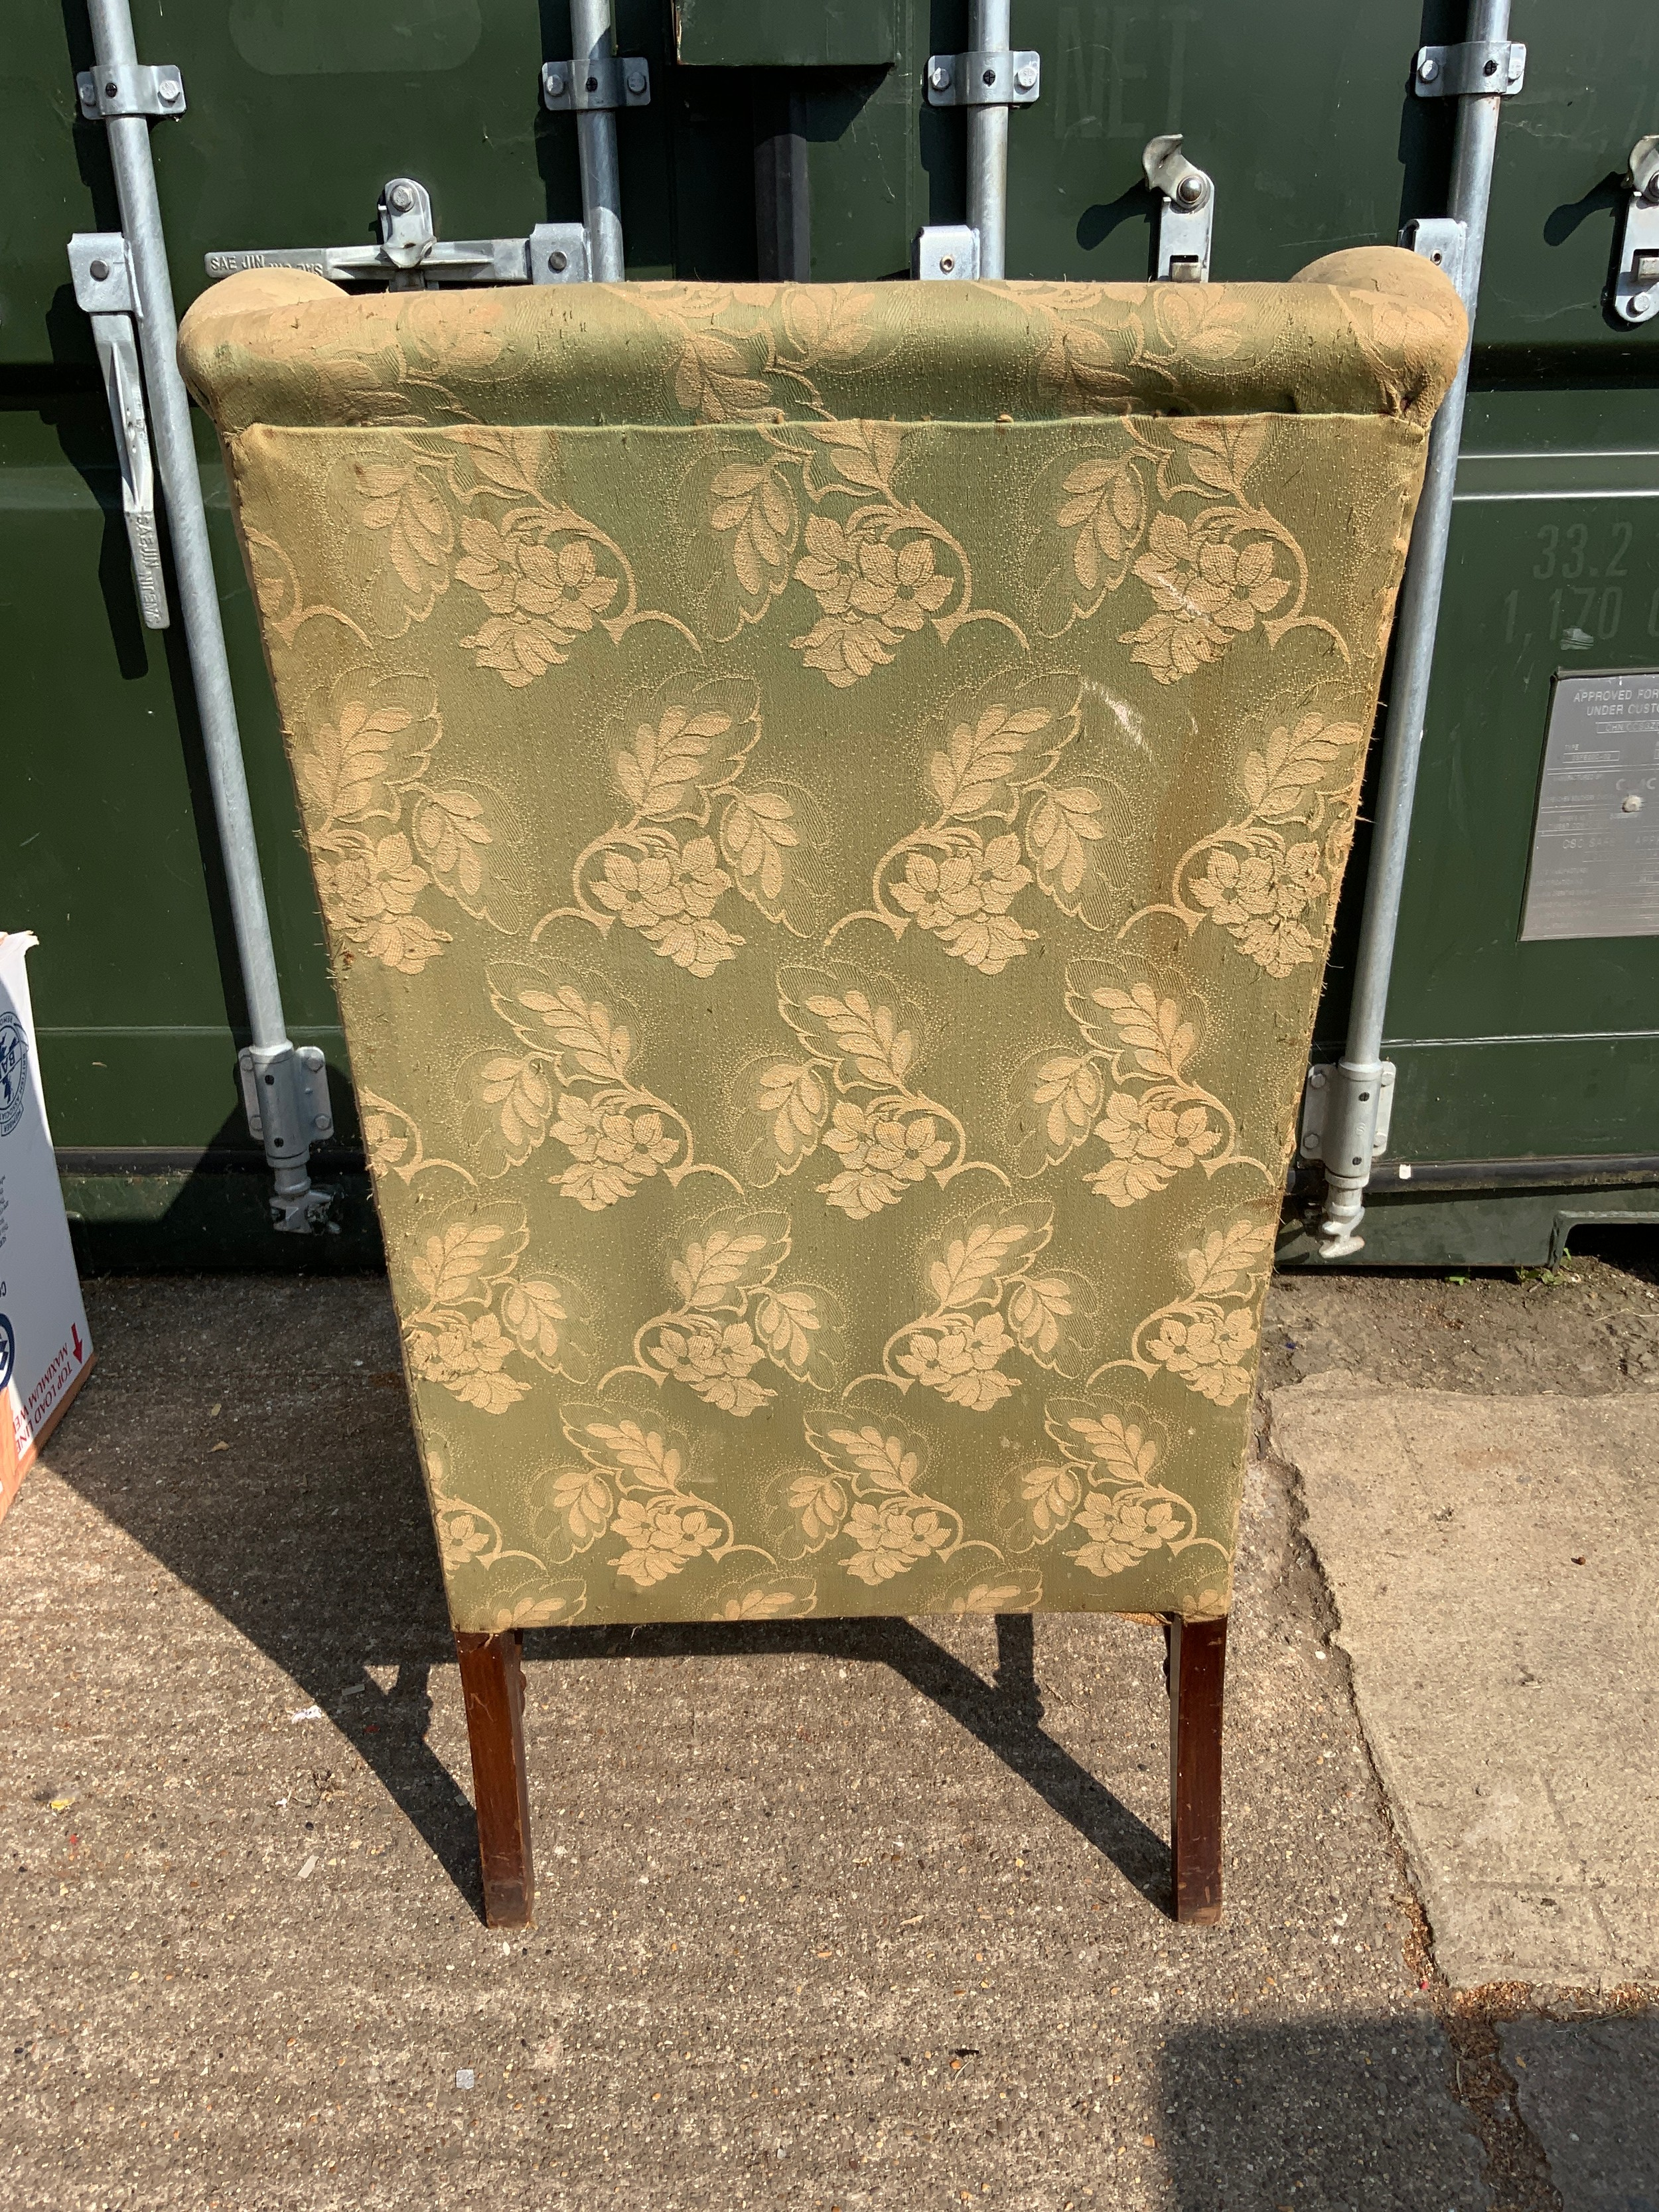 Edwardian High Back Armchair - Image 3 of 3